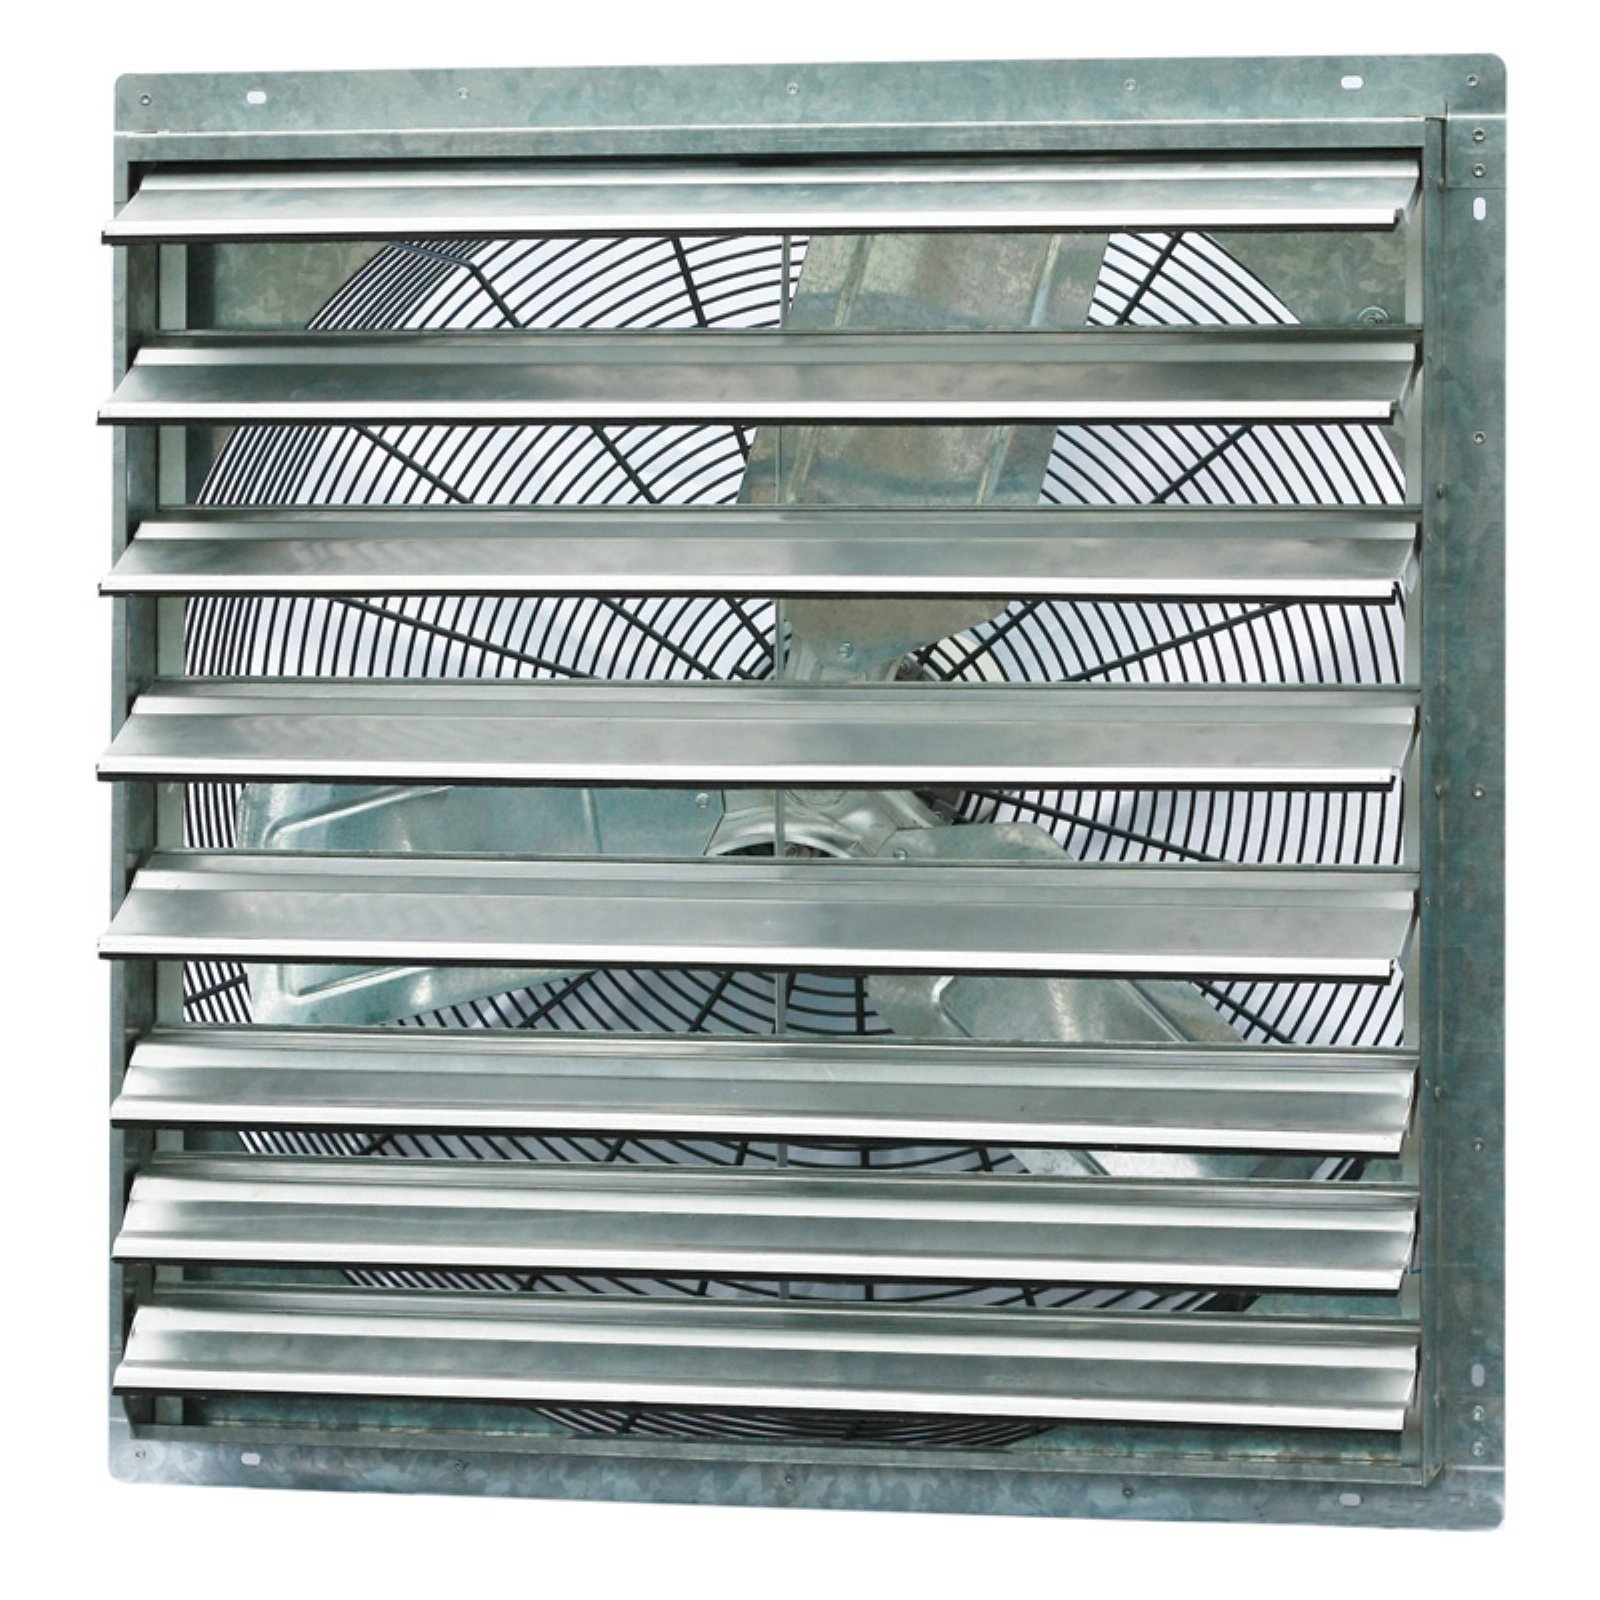 "iLIVING 30"" Single Speed Shutter Exhaust Fan, Wall-Mounted"